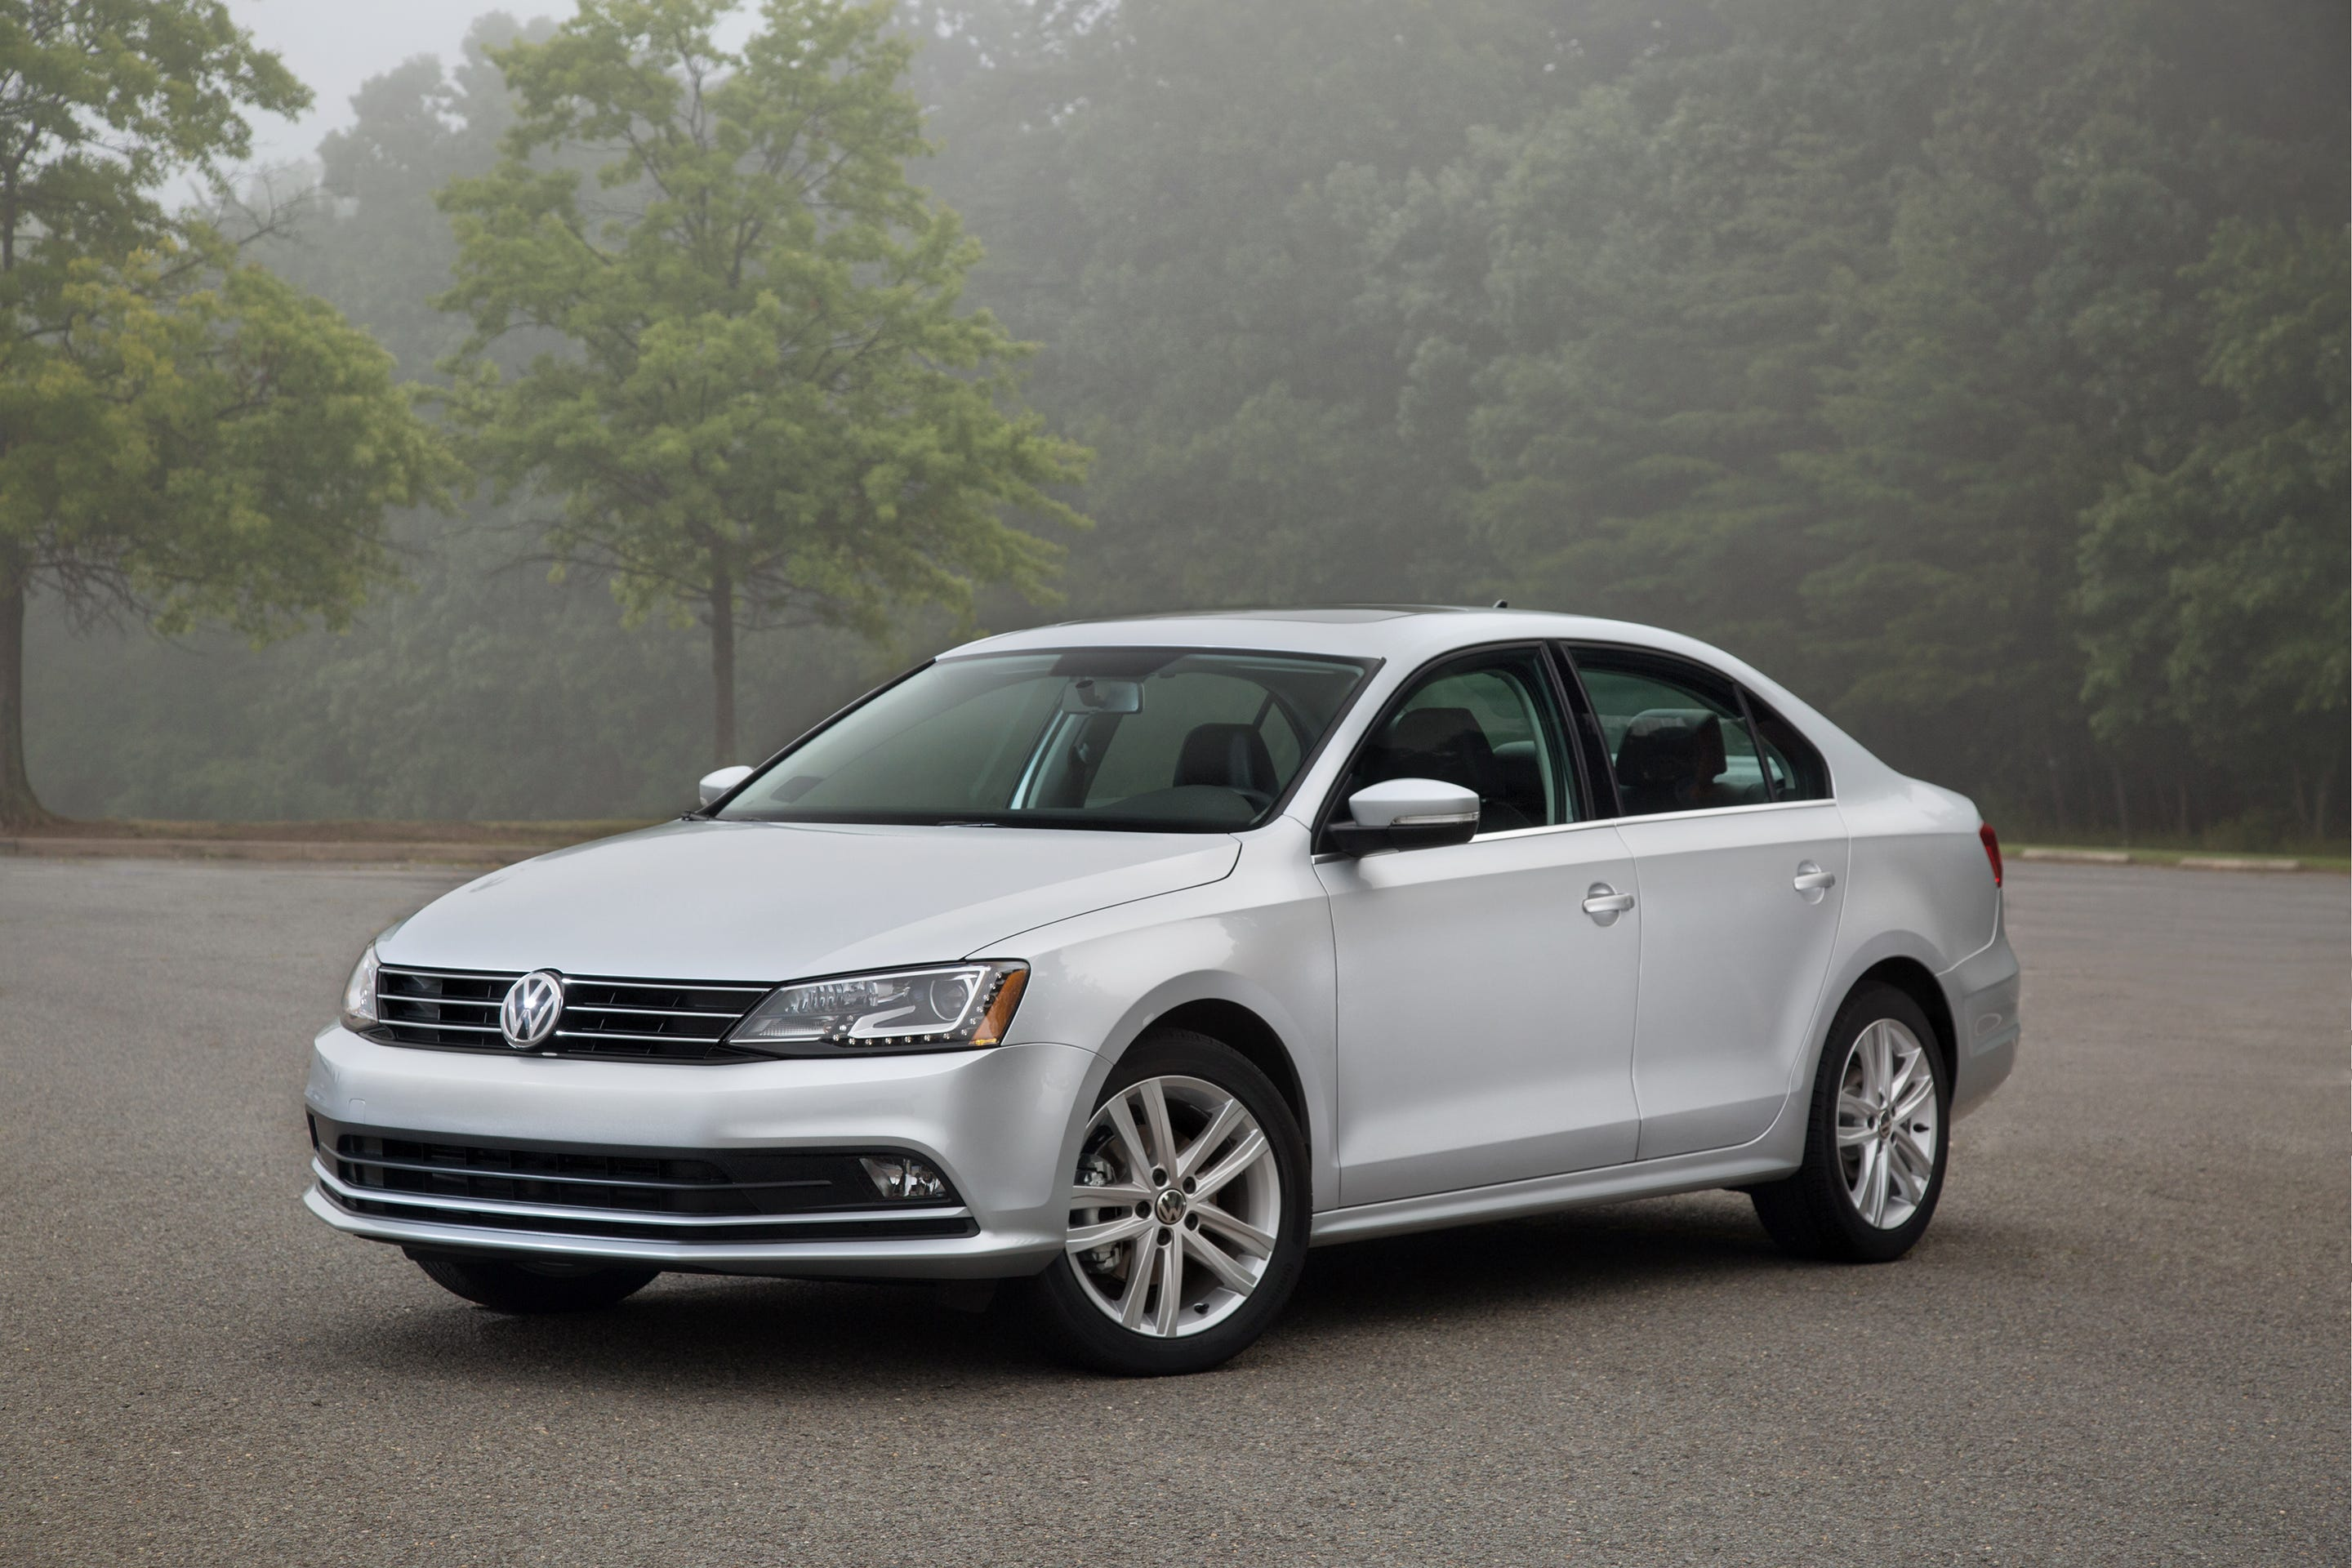 Vw jetta station wagon 2015